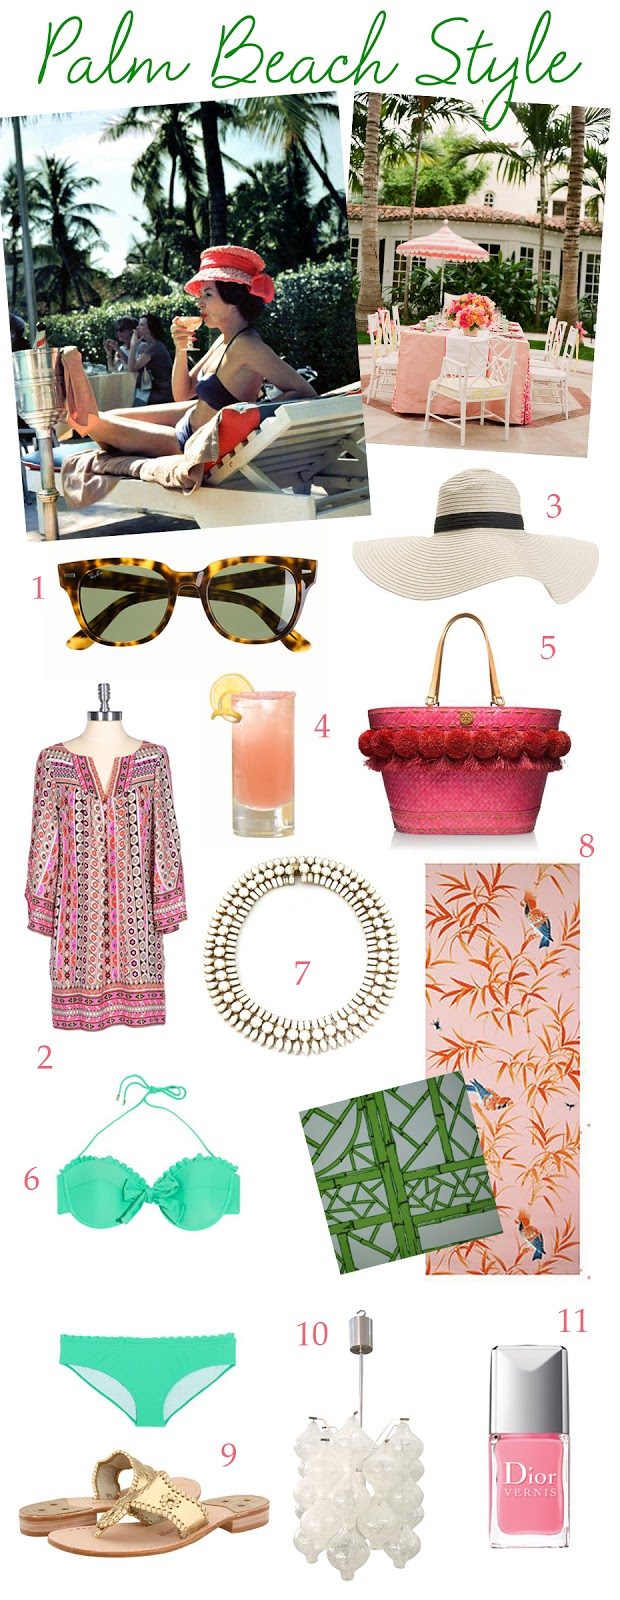 Palm Beach Style Magnificent Of Palm Beach Fashion Style Images